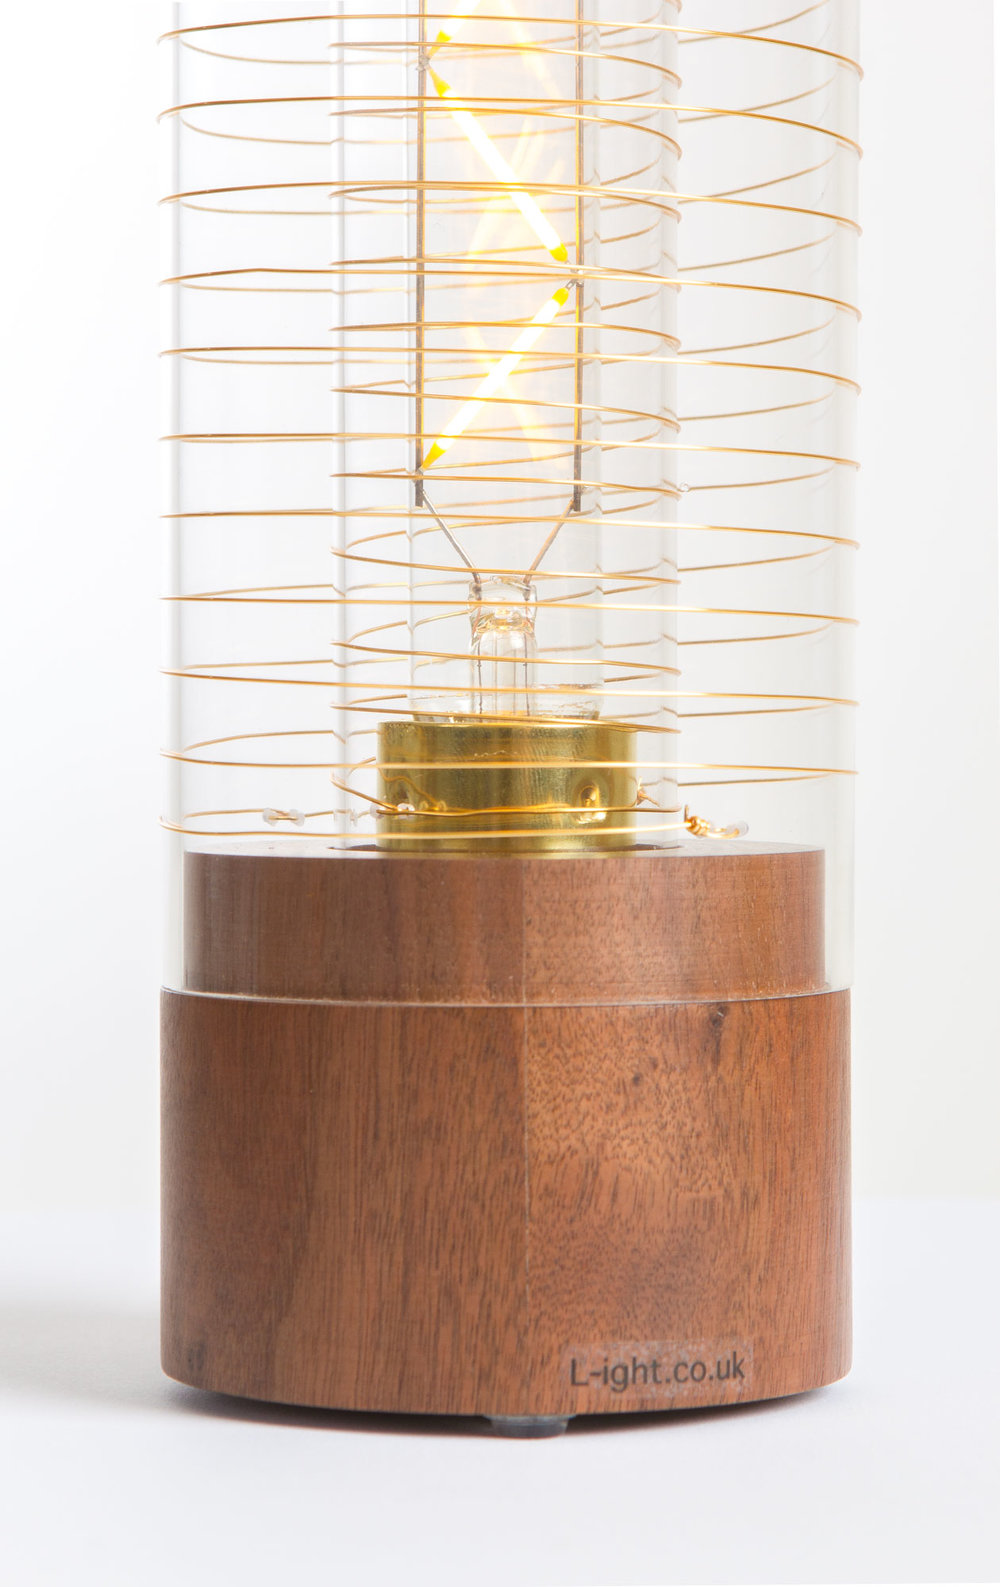 Luna Lamp Classic - walnut base with gilt wire www.l-ight.co.uk